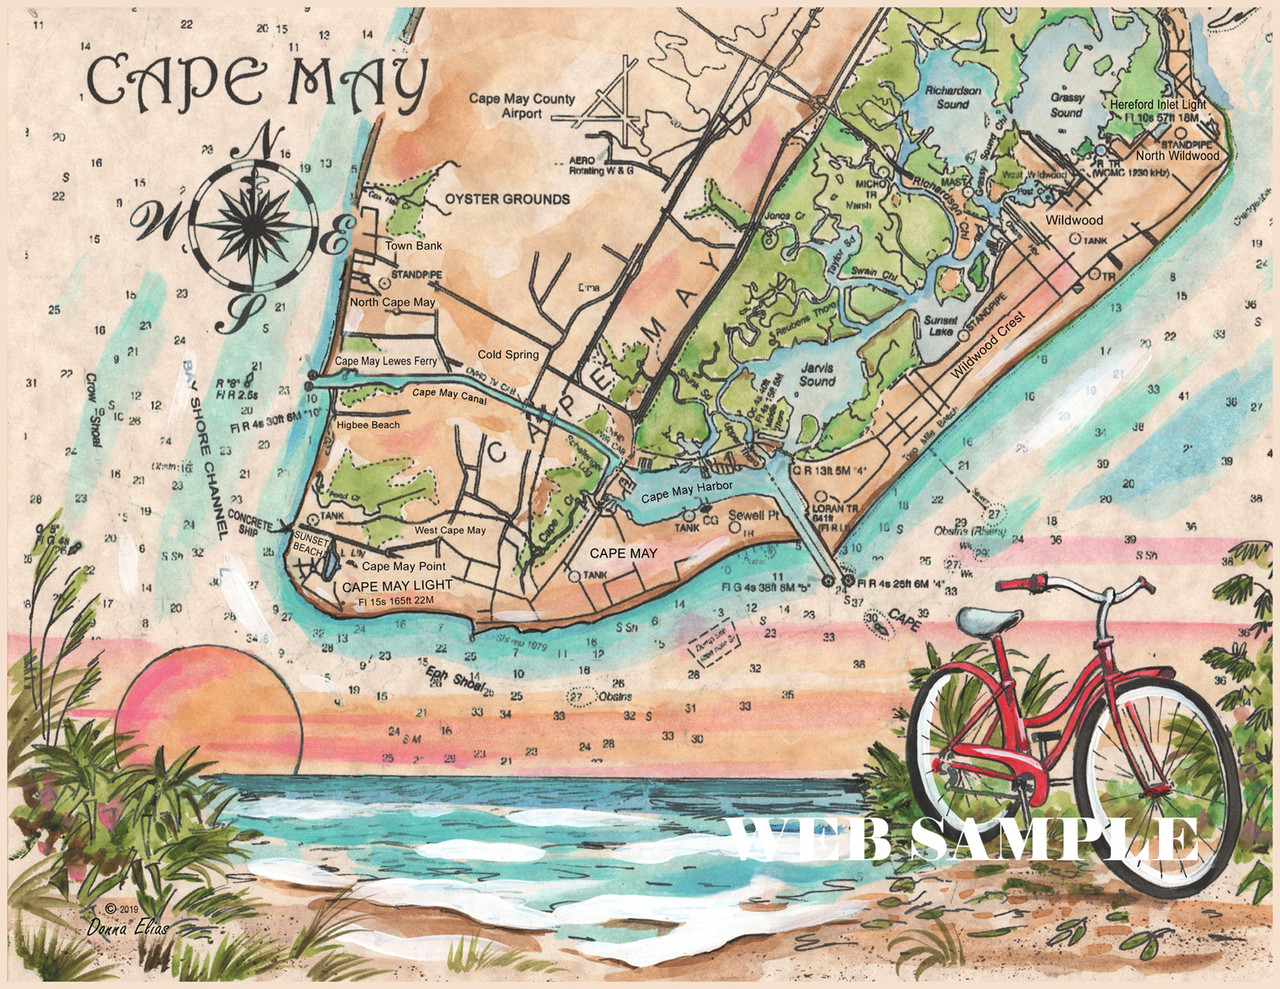 Charting Cape May by Donna Elias